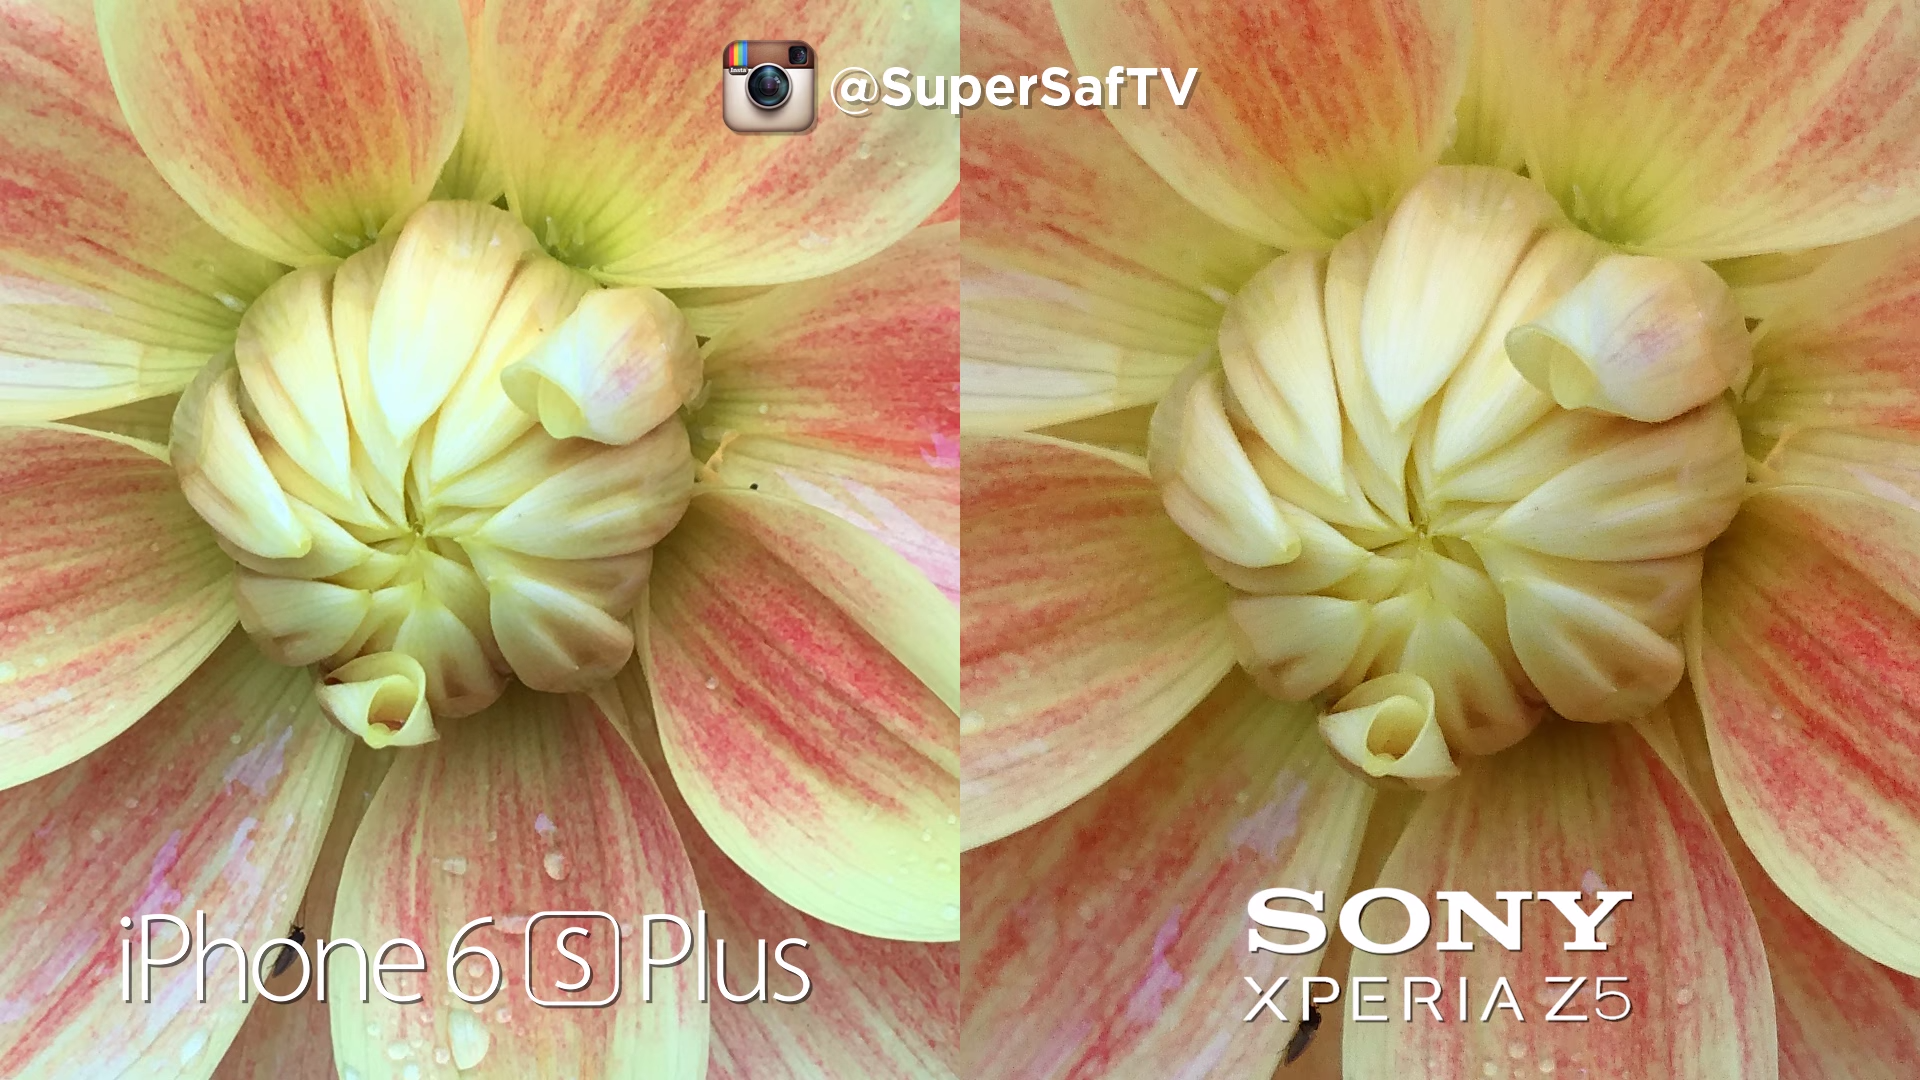 Xperia z5 vs iPhone 6s plus (3)